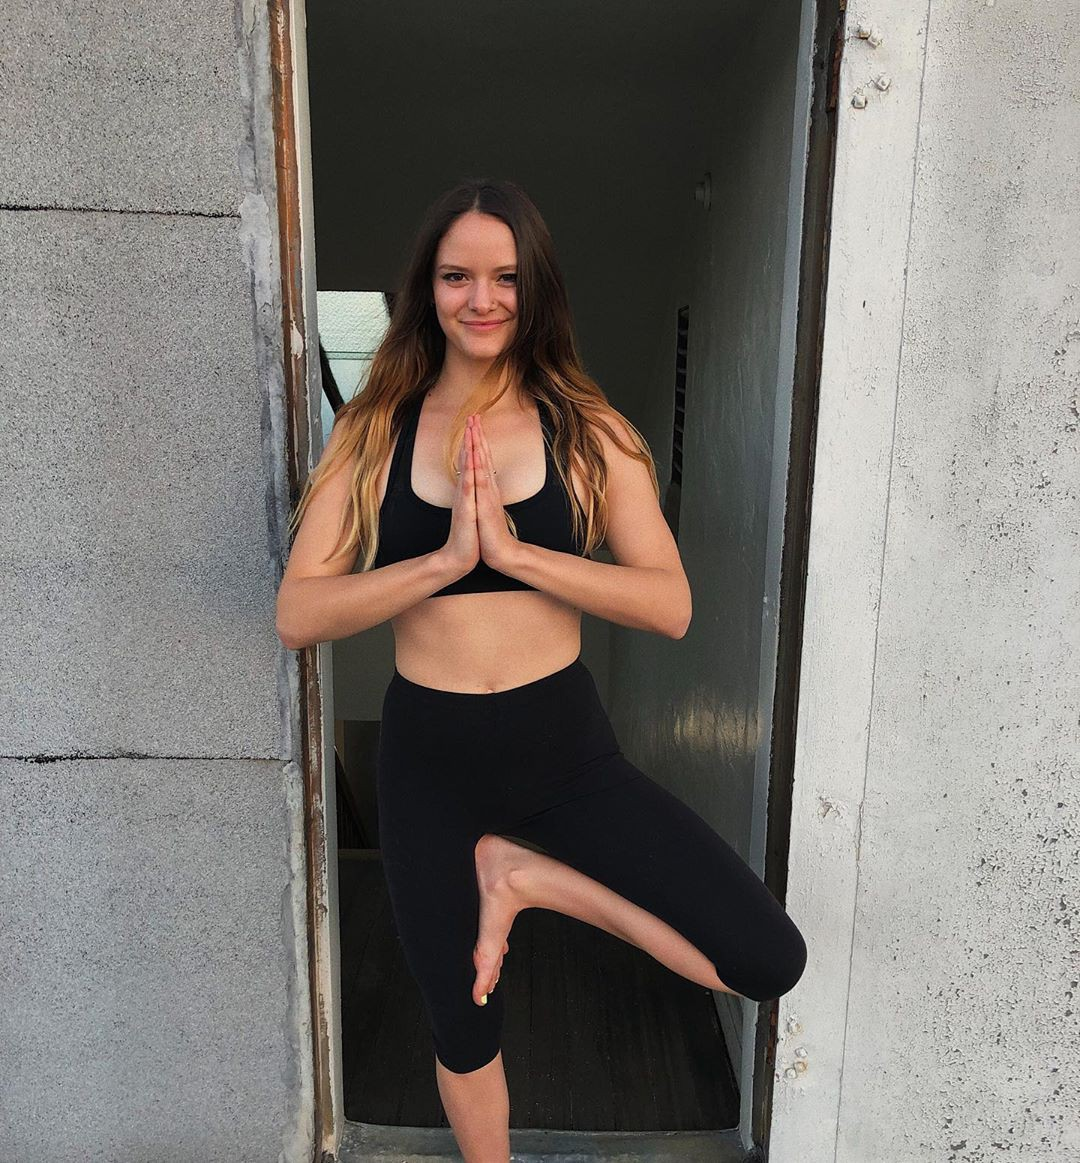 elise shannon adam active pants, sportswear outfit style, instagram photoshoot